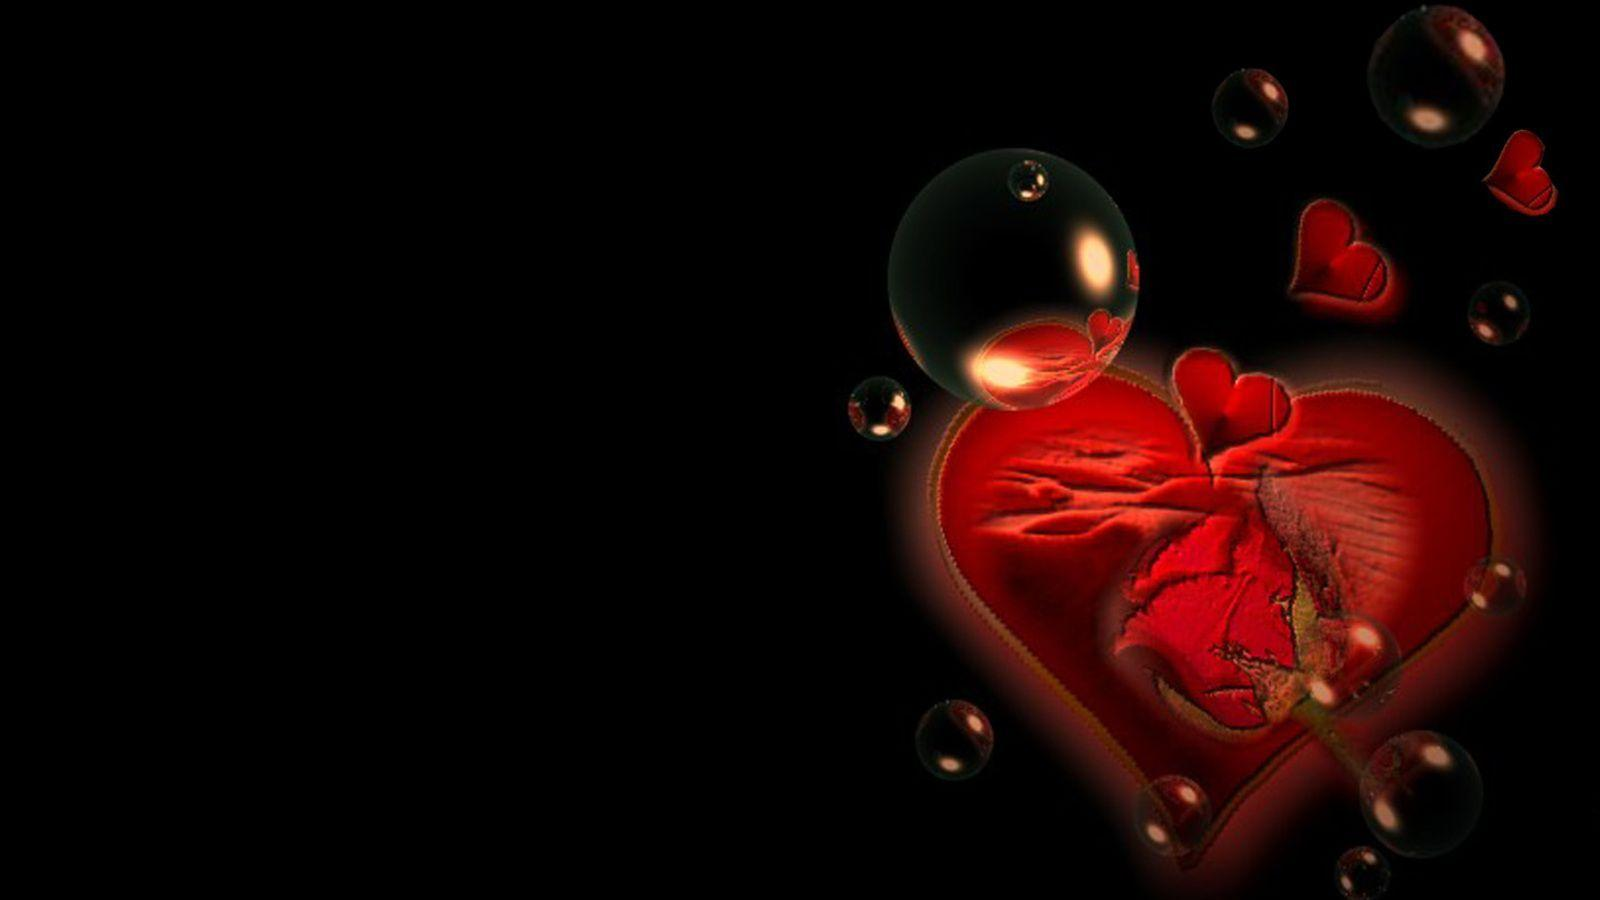 Wallpaper I Love You 3d : Love 3D Wallpapers - Wallpaper cave